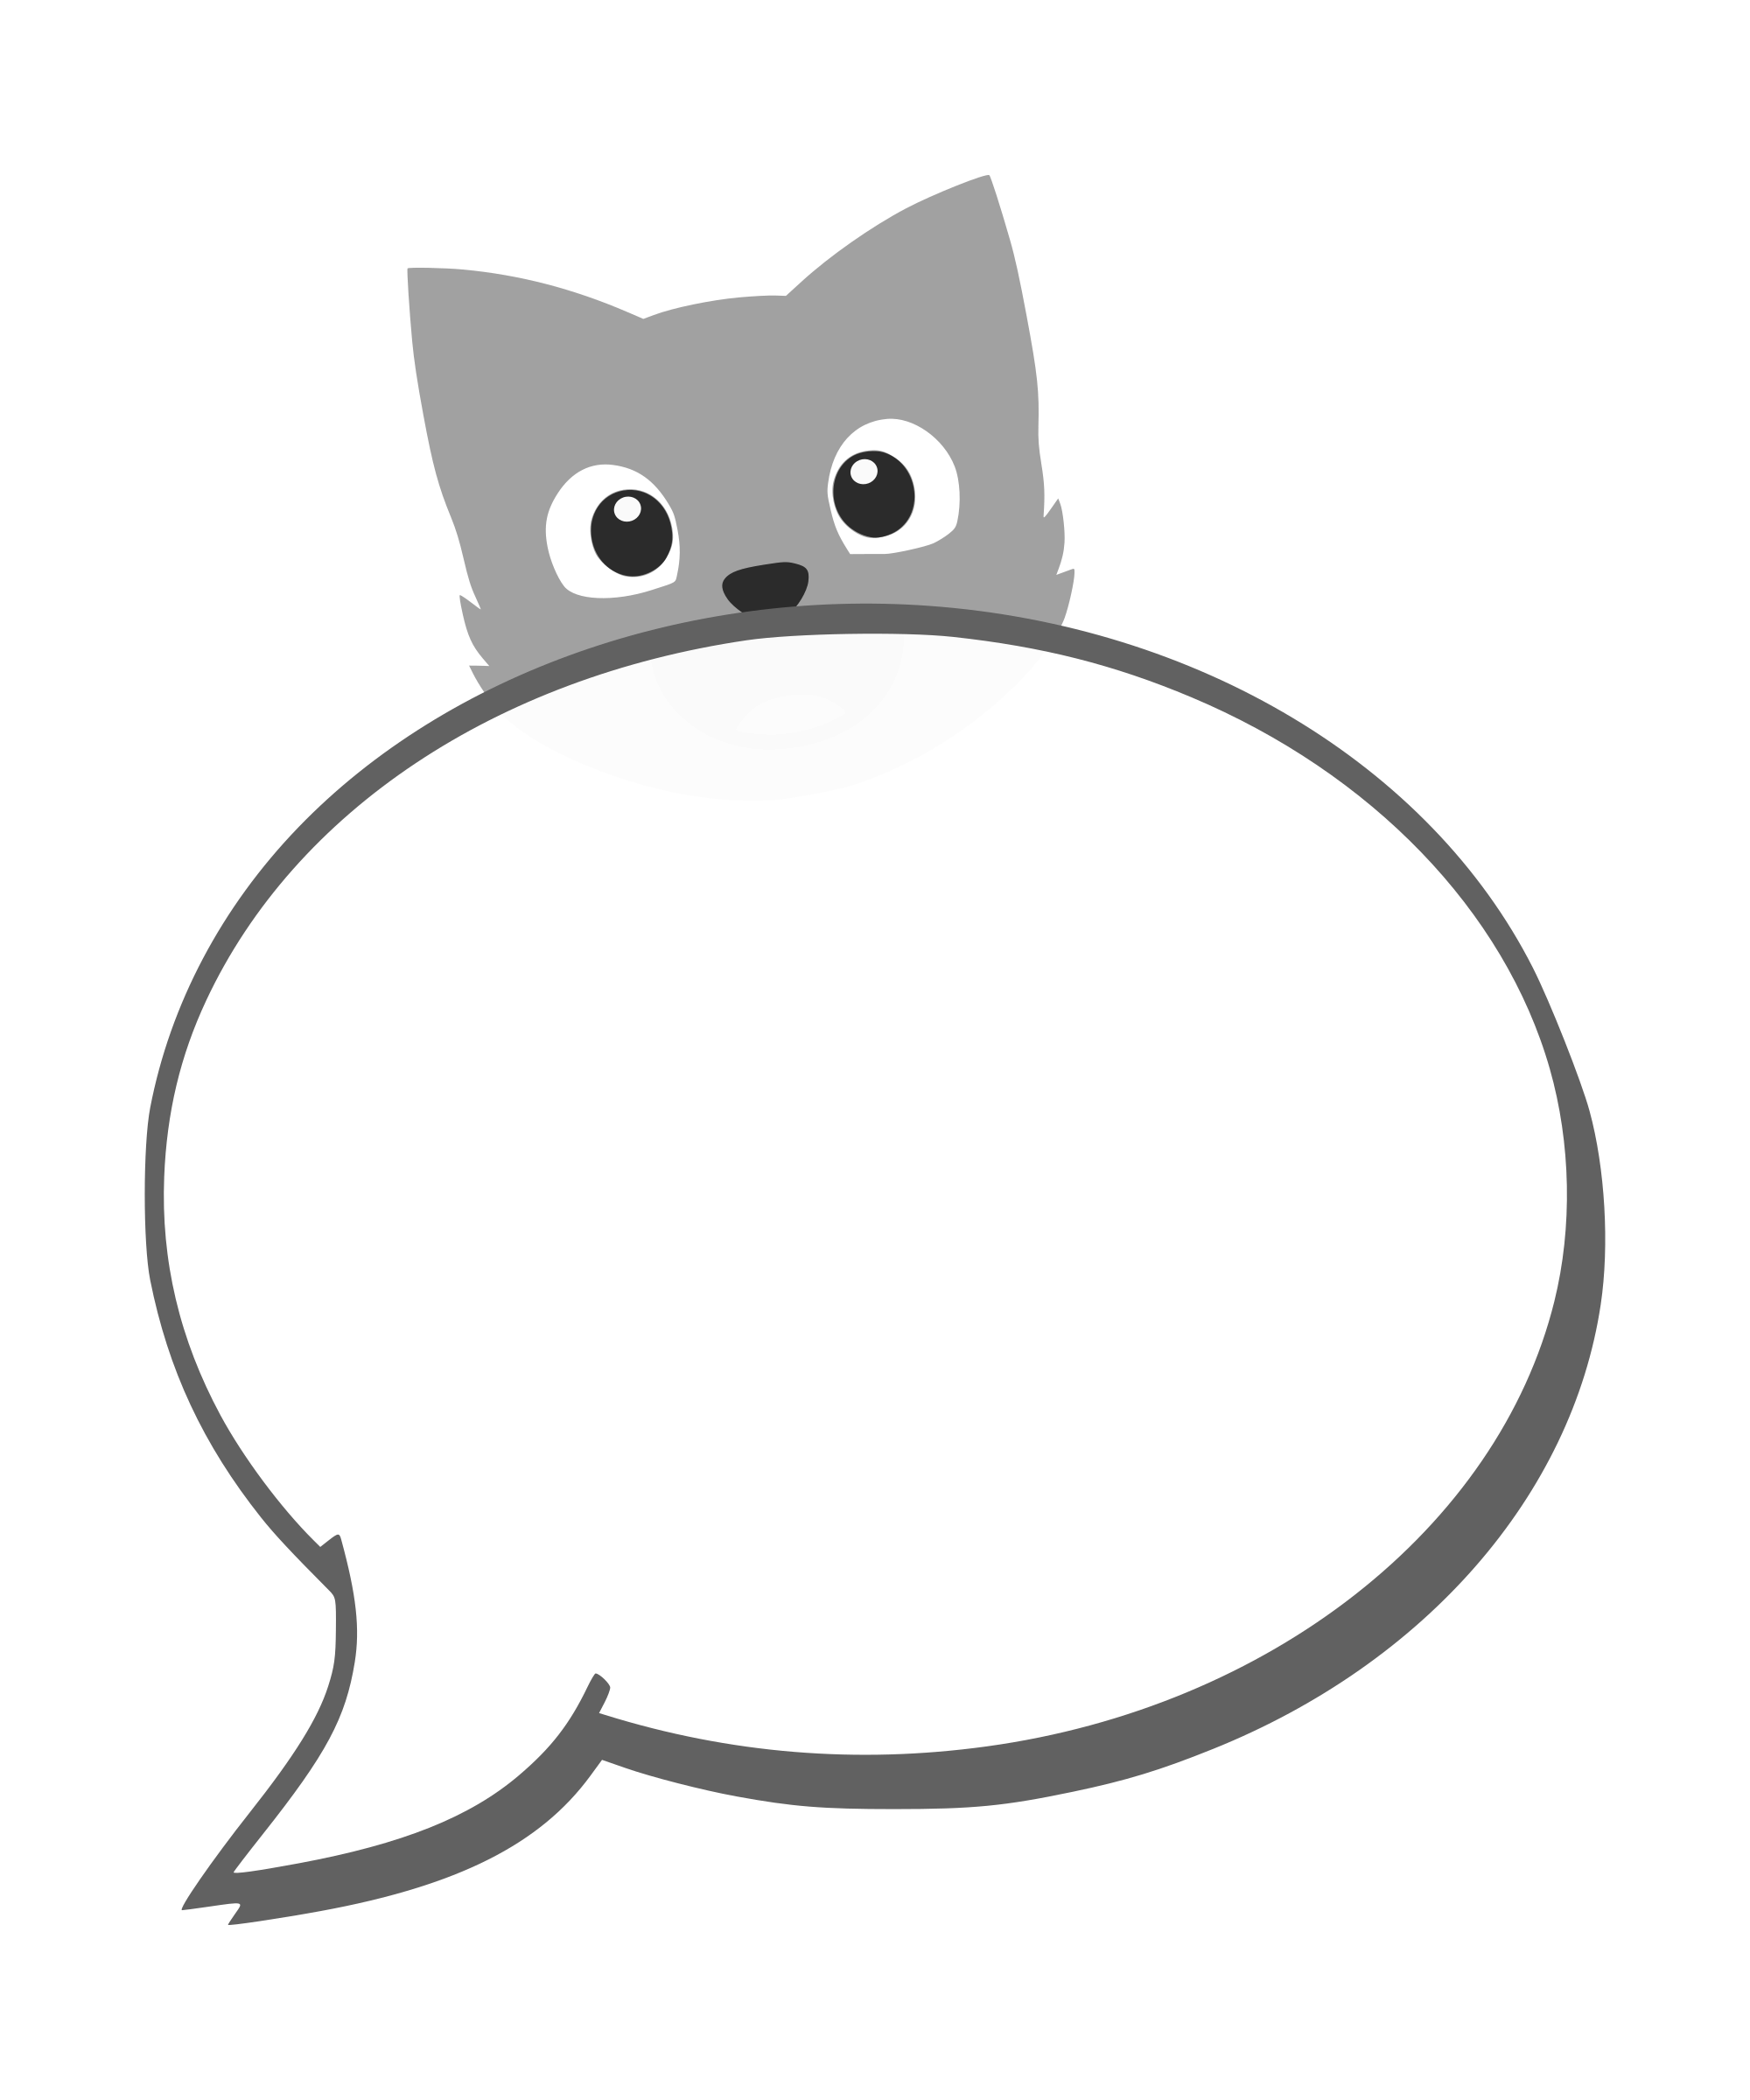 speech balloon with cat by yamachem